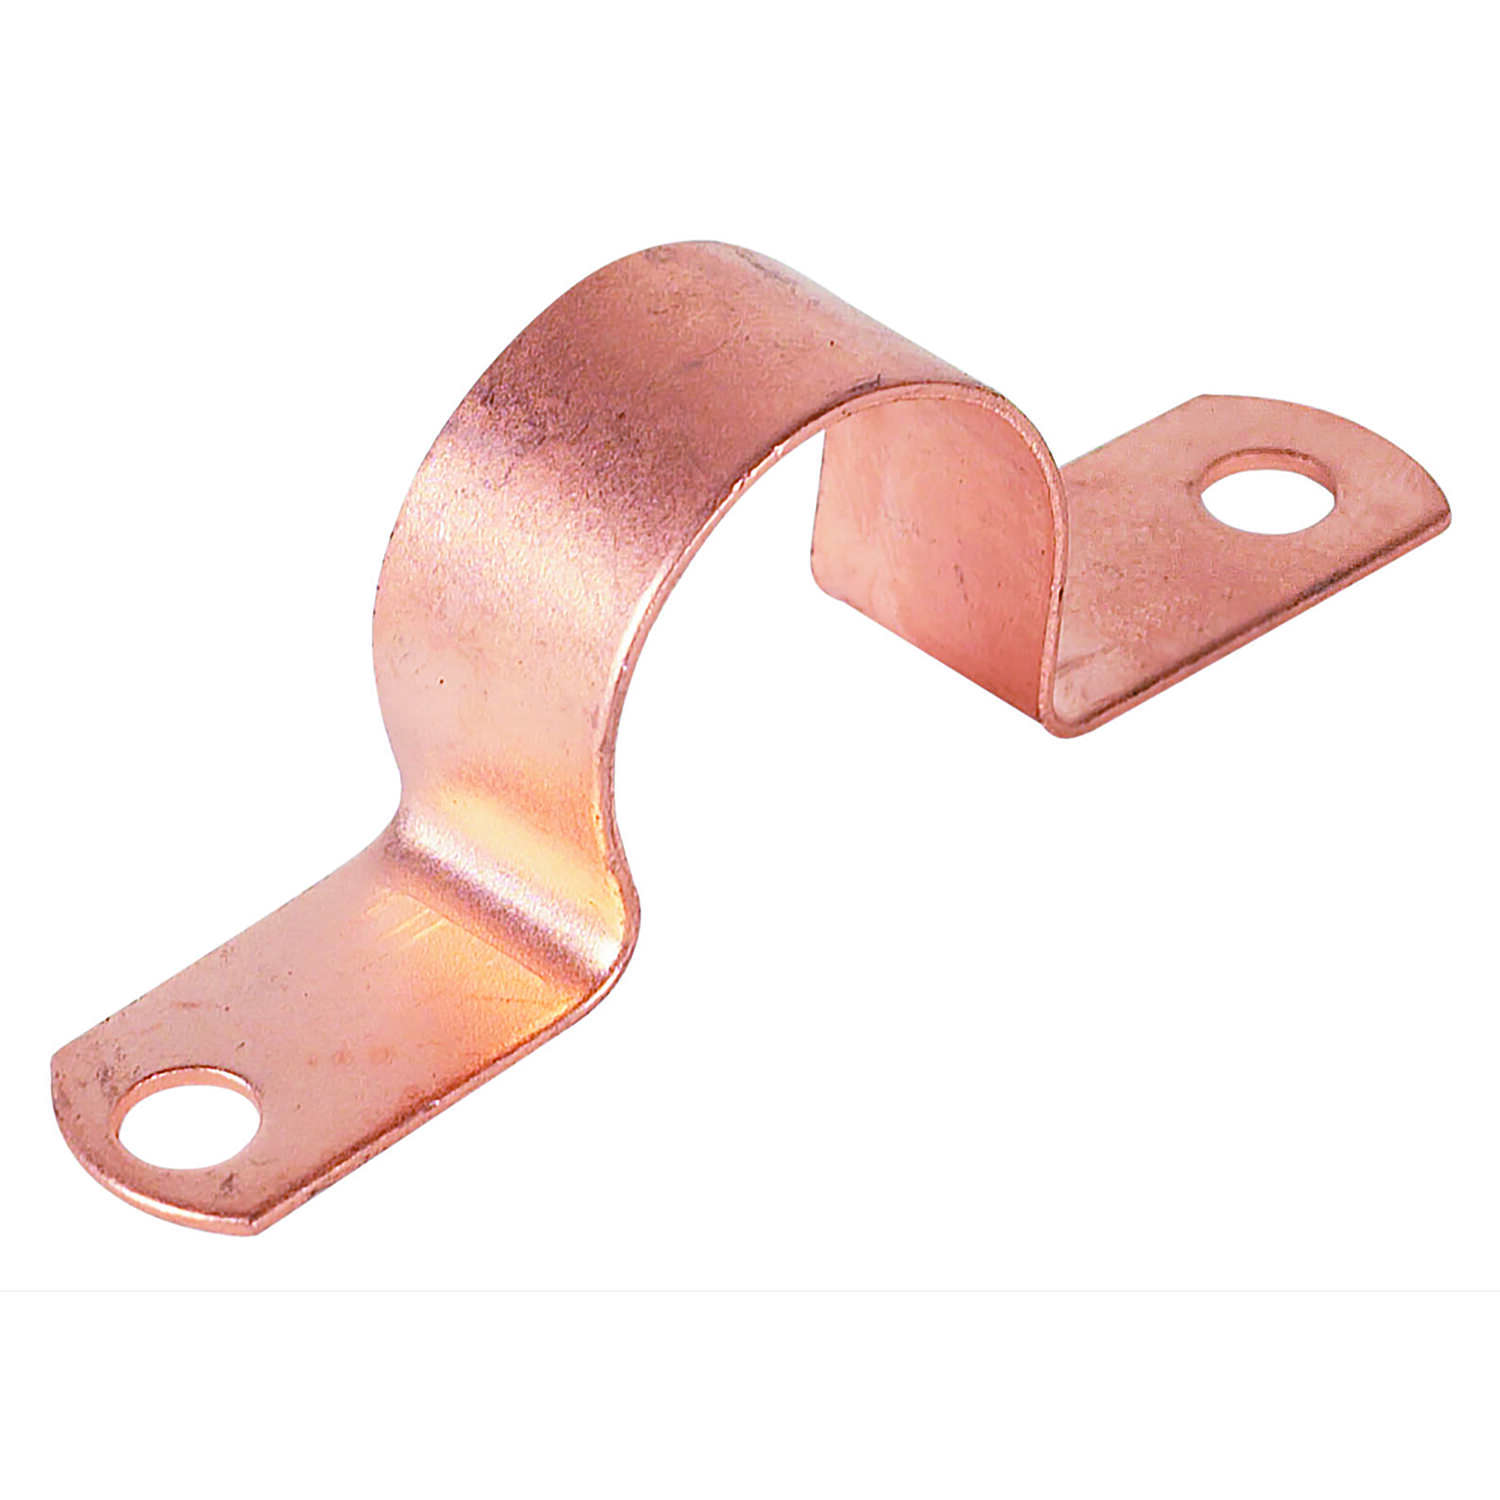 Warwick Hanger  3/4 in. Copper Plated  Carbon Steel  Tube Strap